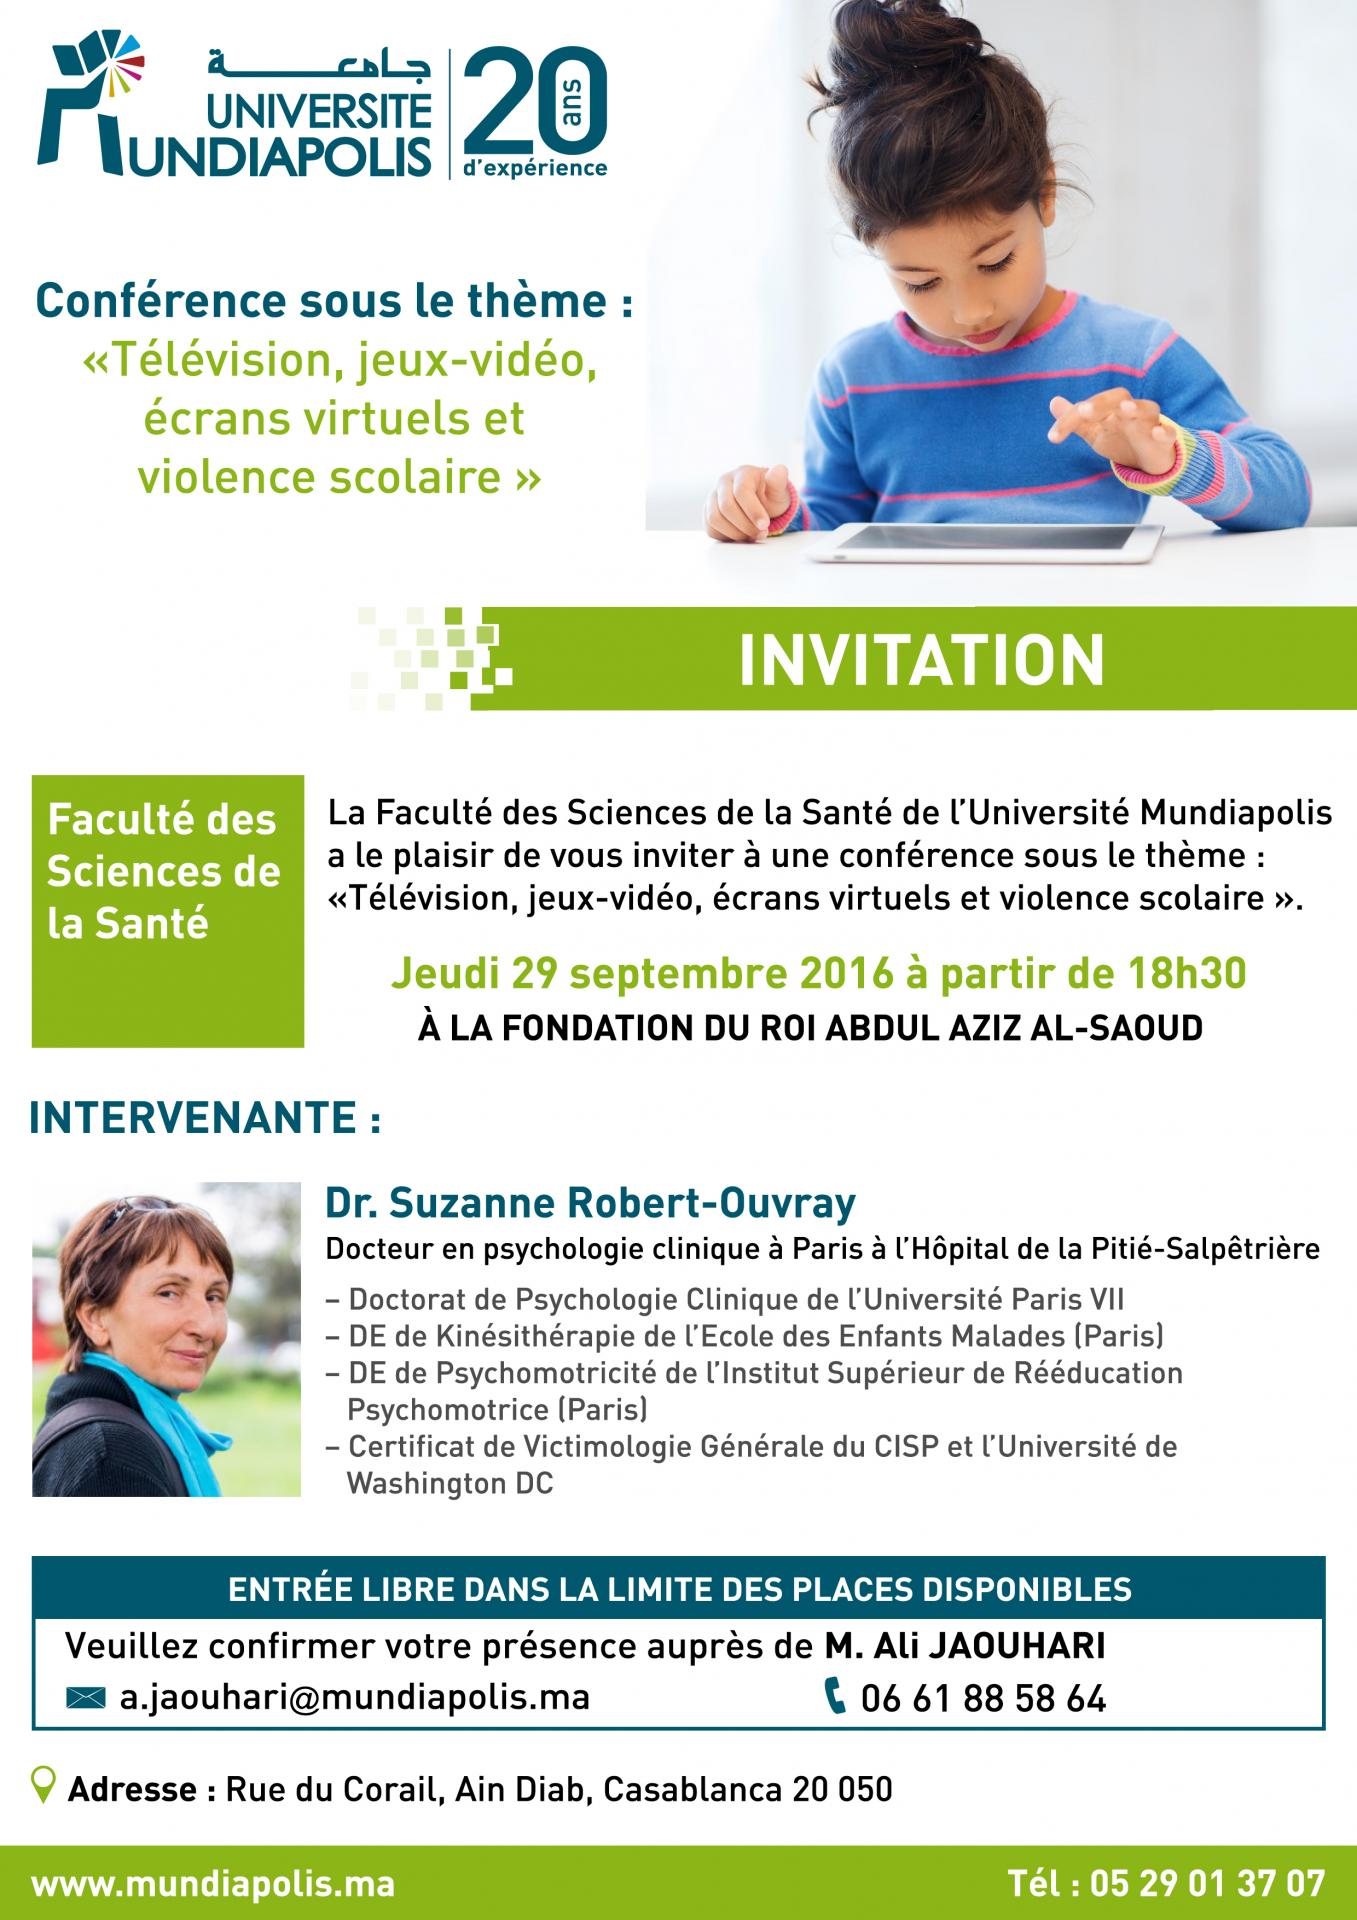 Invitation conference fss universite mundiapolis